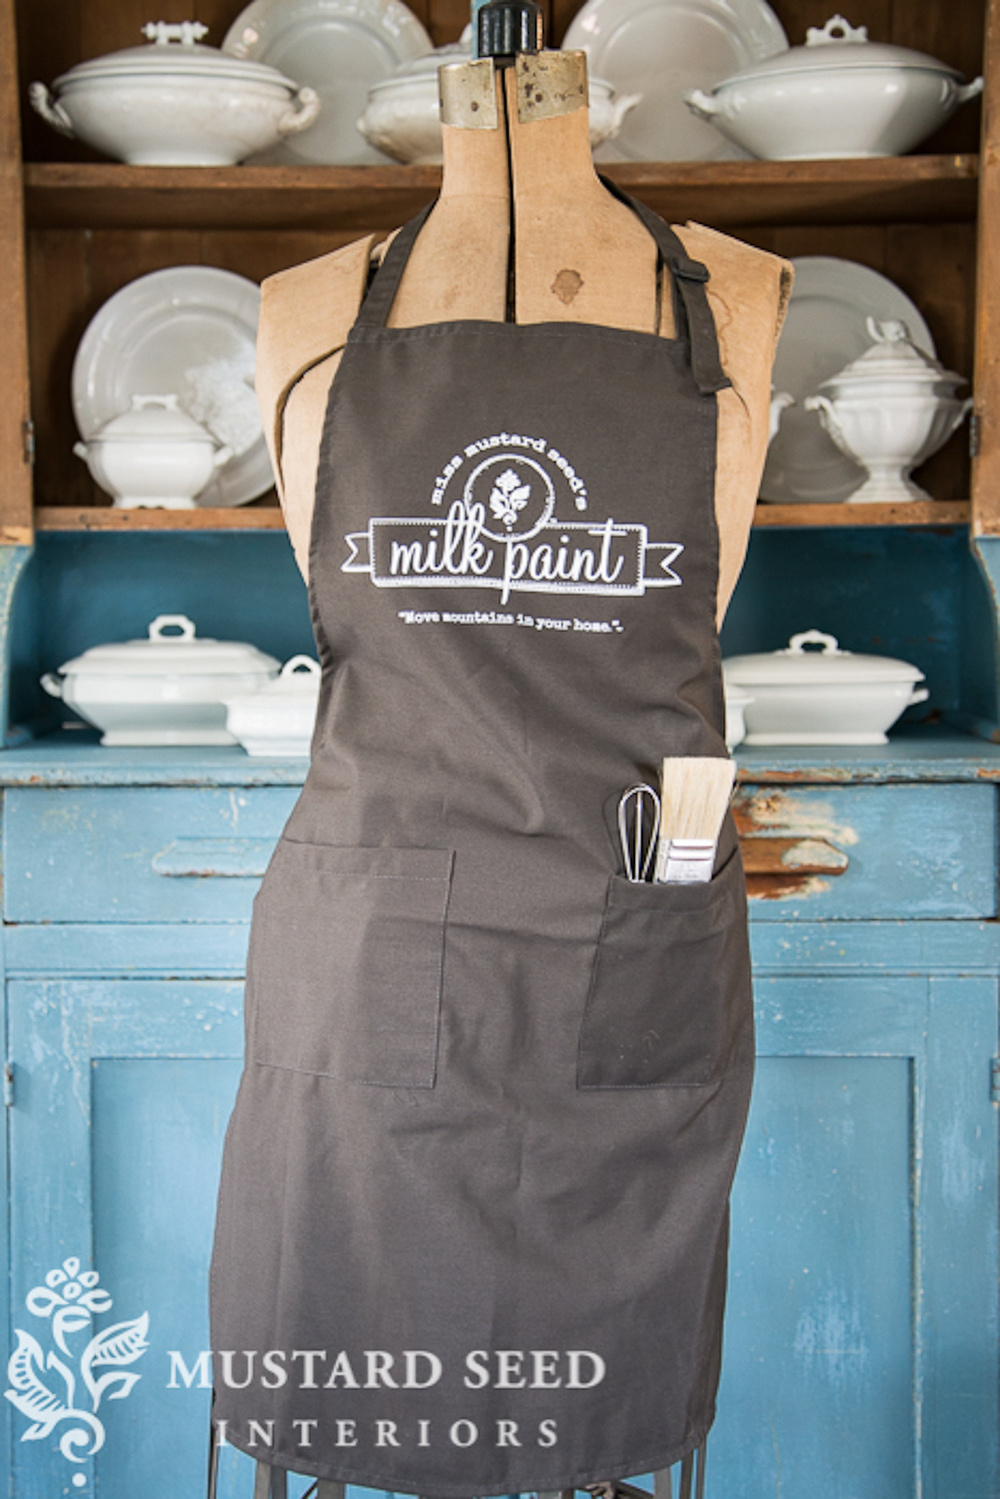 Miss Mustard Seed's apron - available at My Painted Door (.com)